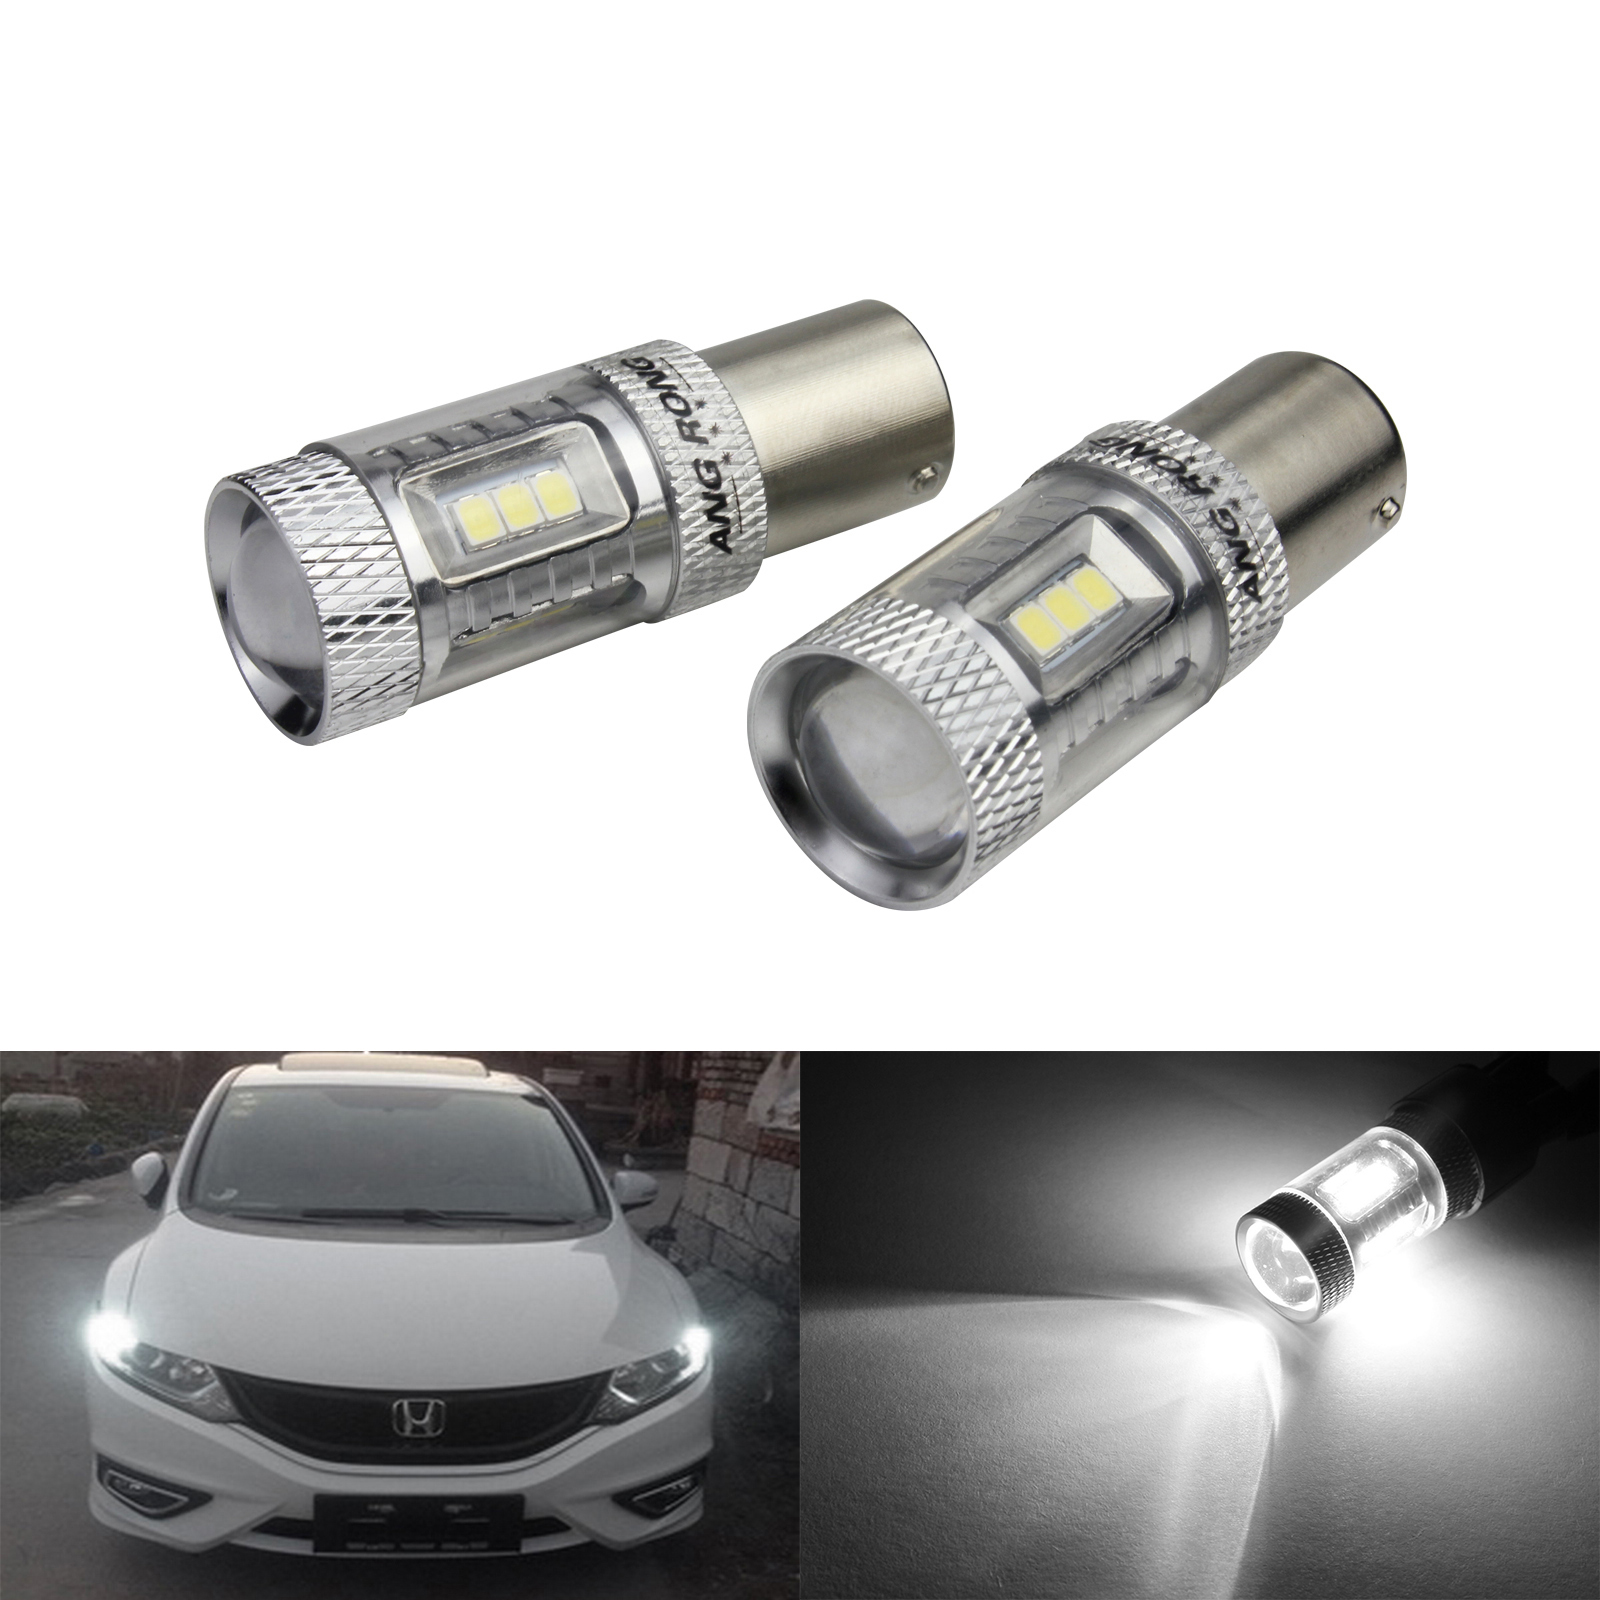 2x Bulbs P21W Ba15s Reverse LED Bright White 6000K Canbus Mini Cooper R56 06-10